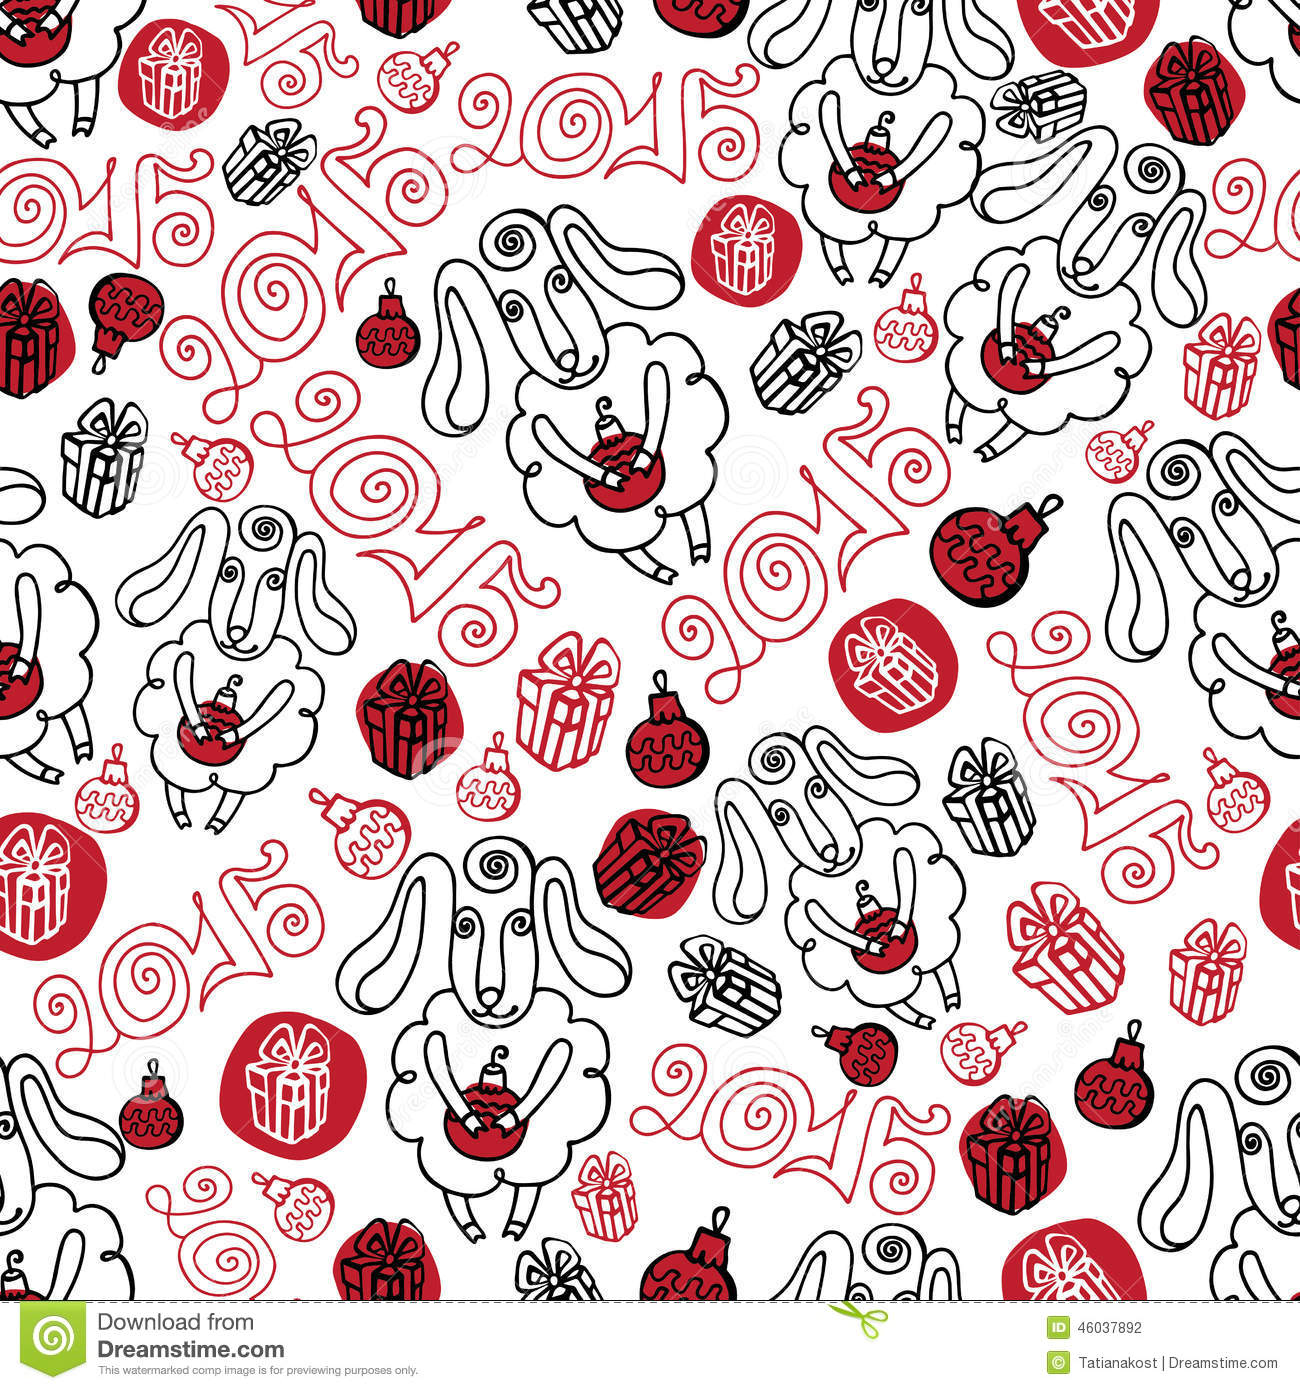 Outline sheep christmas decor seamless pattern stock for Fabric mural designs